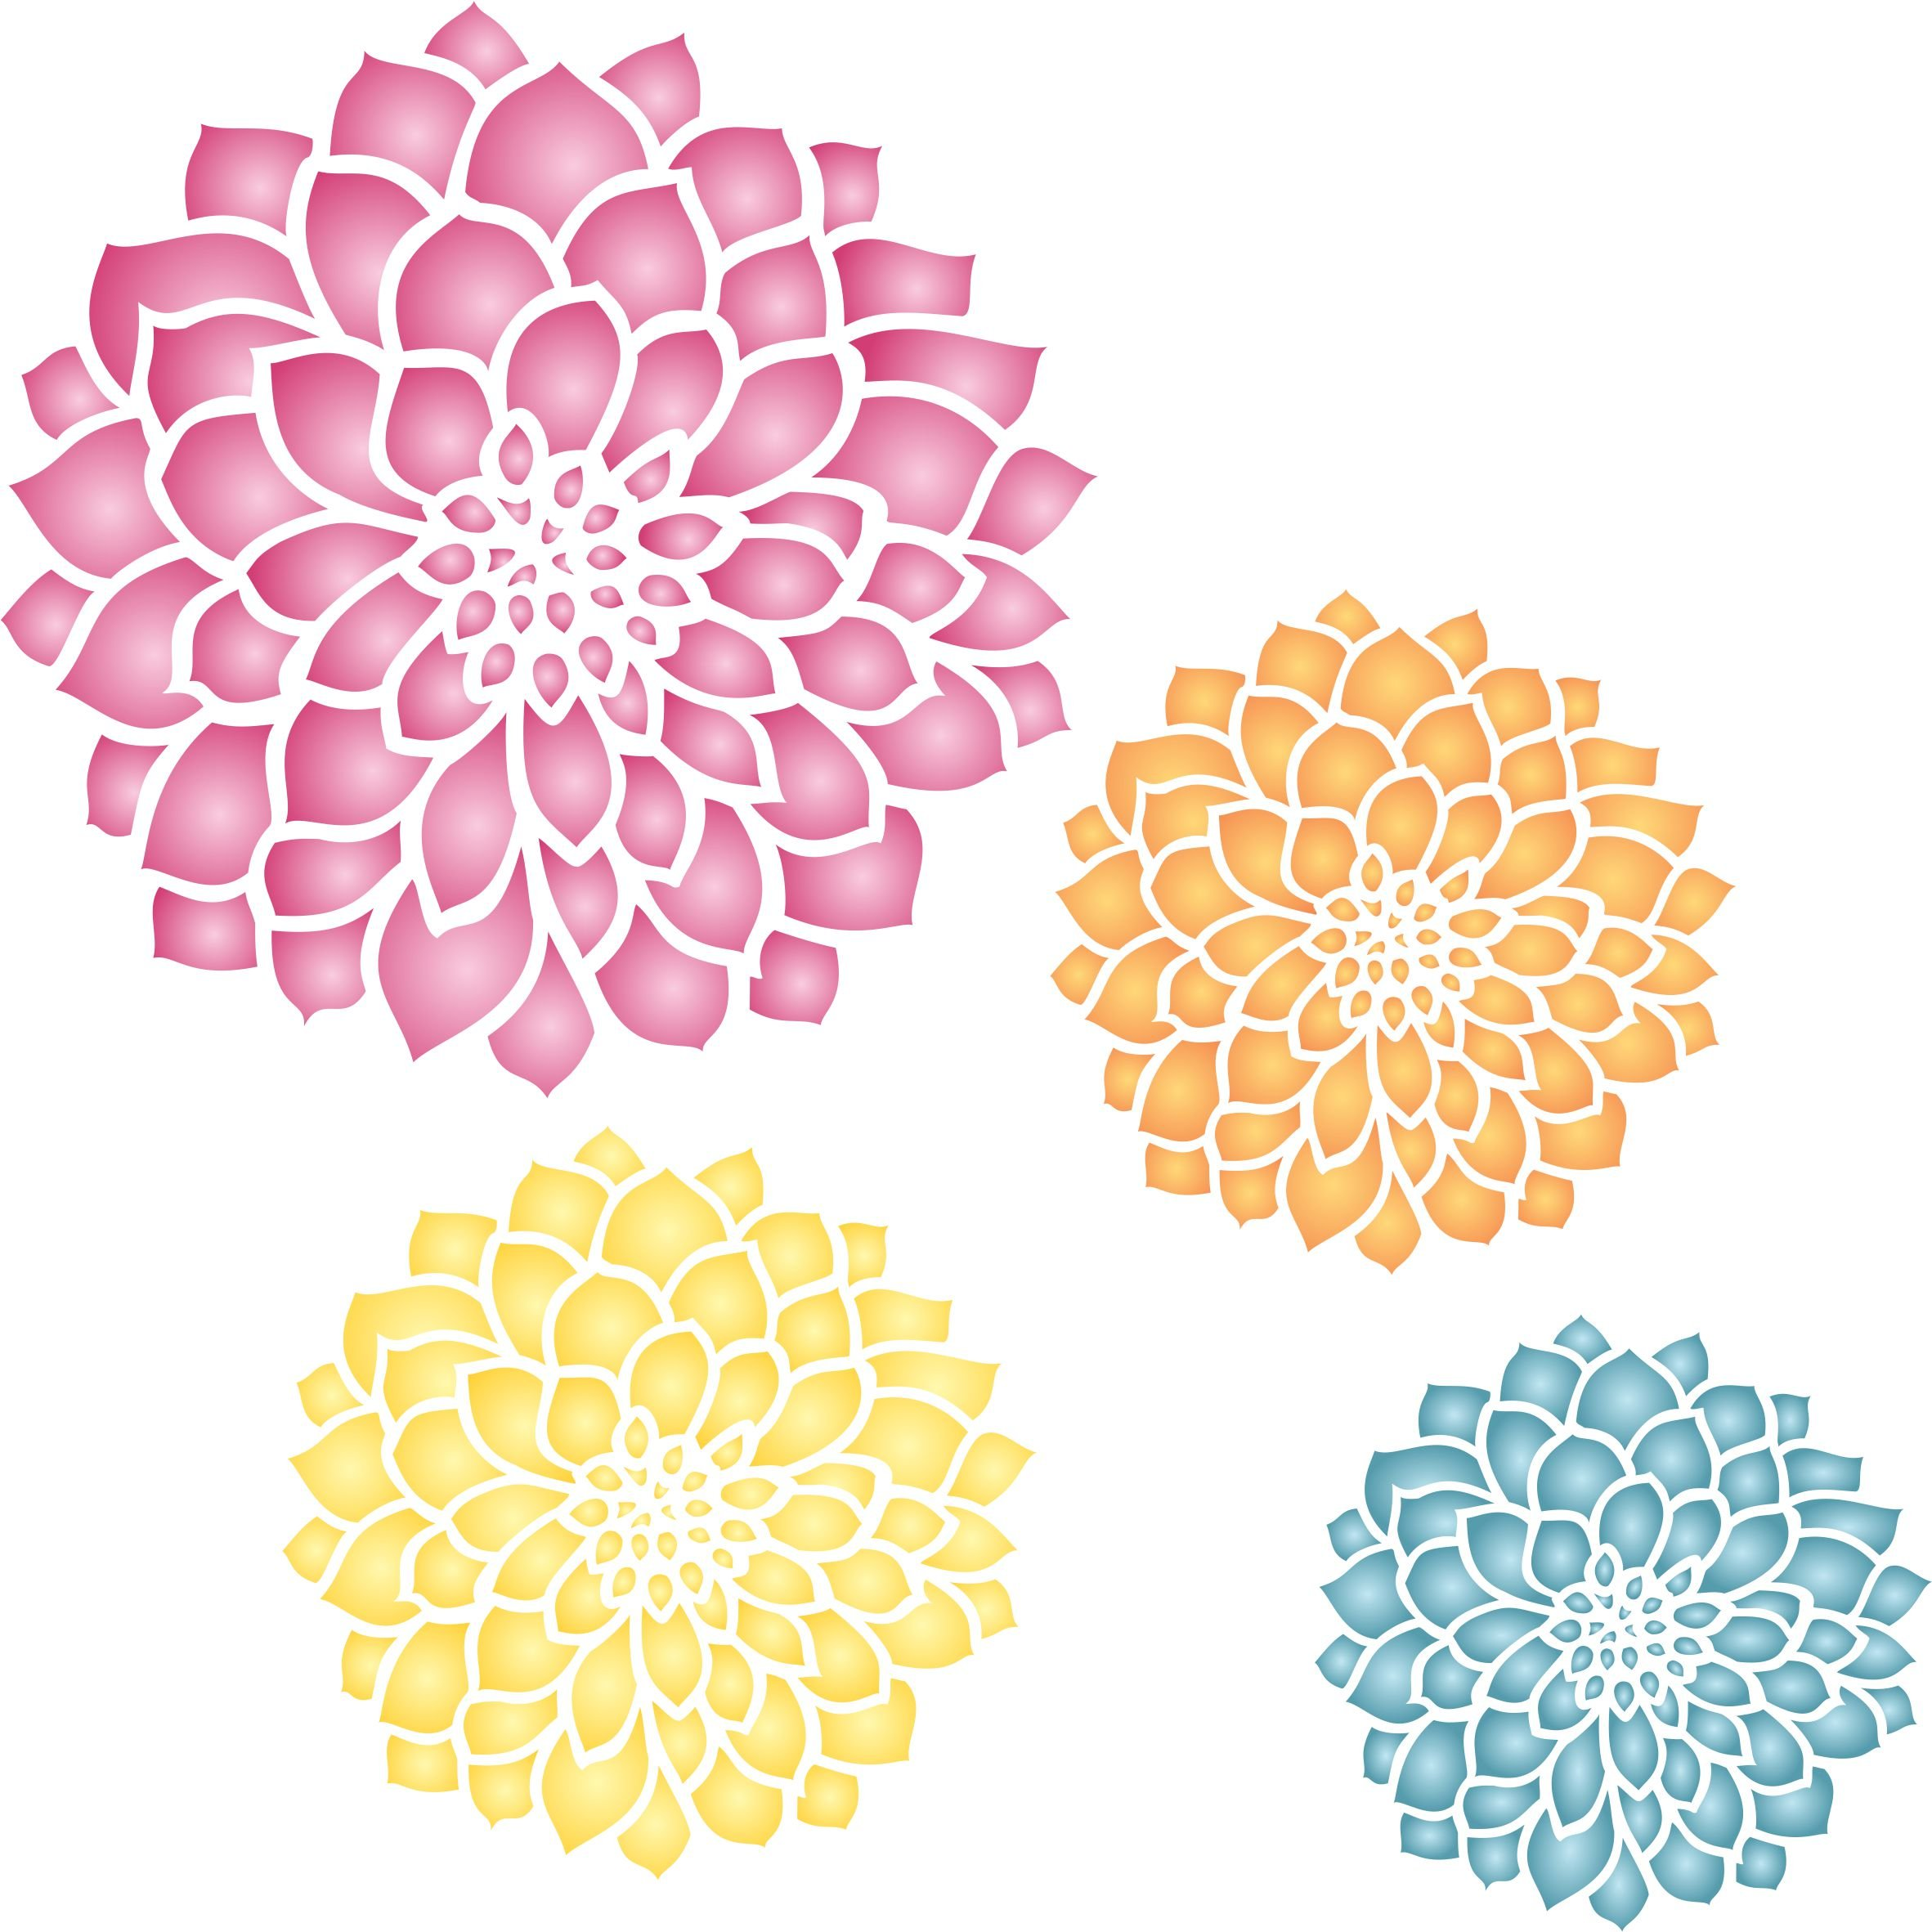 Zinnia Mural Stencil - (size 10.5'' x 10.5'') Reusable Wall Stencils for Painting - Best Quality Mural Wall Art Ideas - Use on Walls, Floors, Fabrics, Glass, Wood, and More... by Stencils for Walls